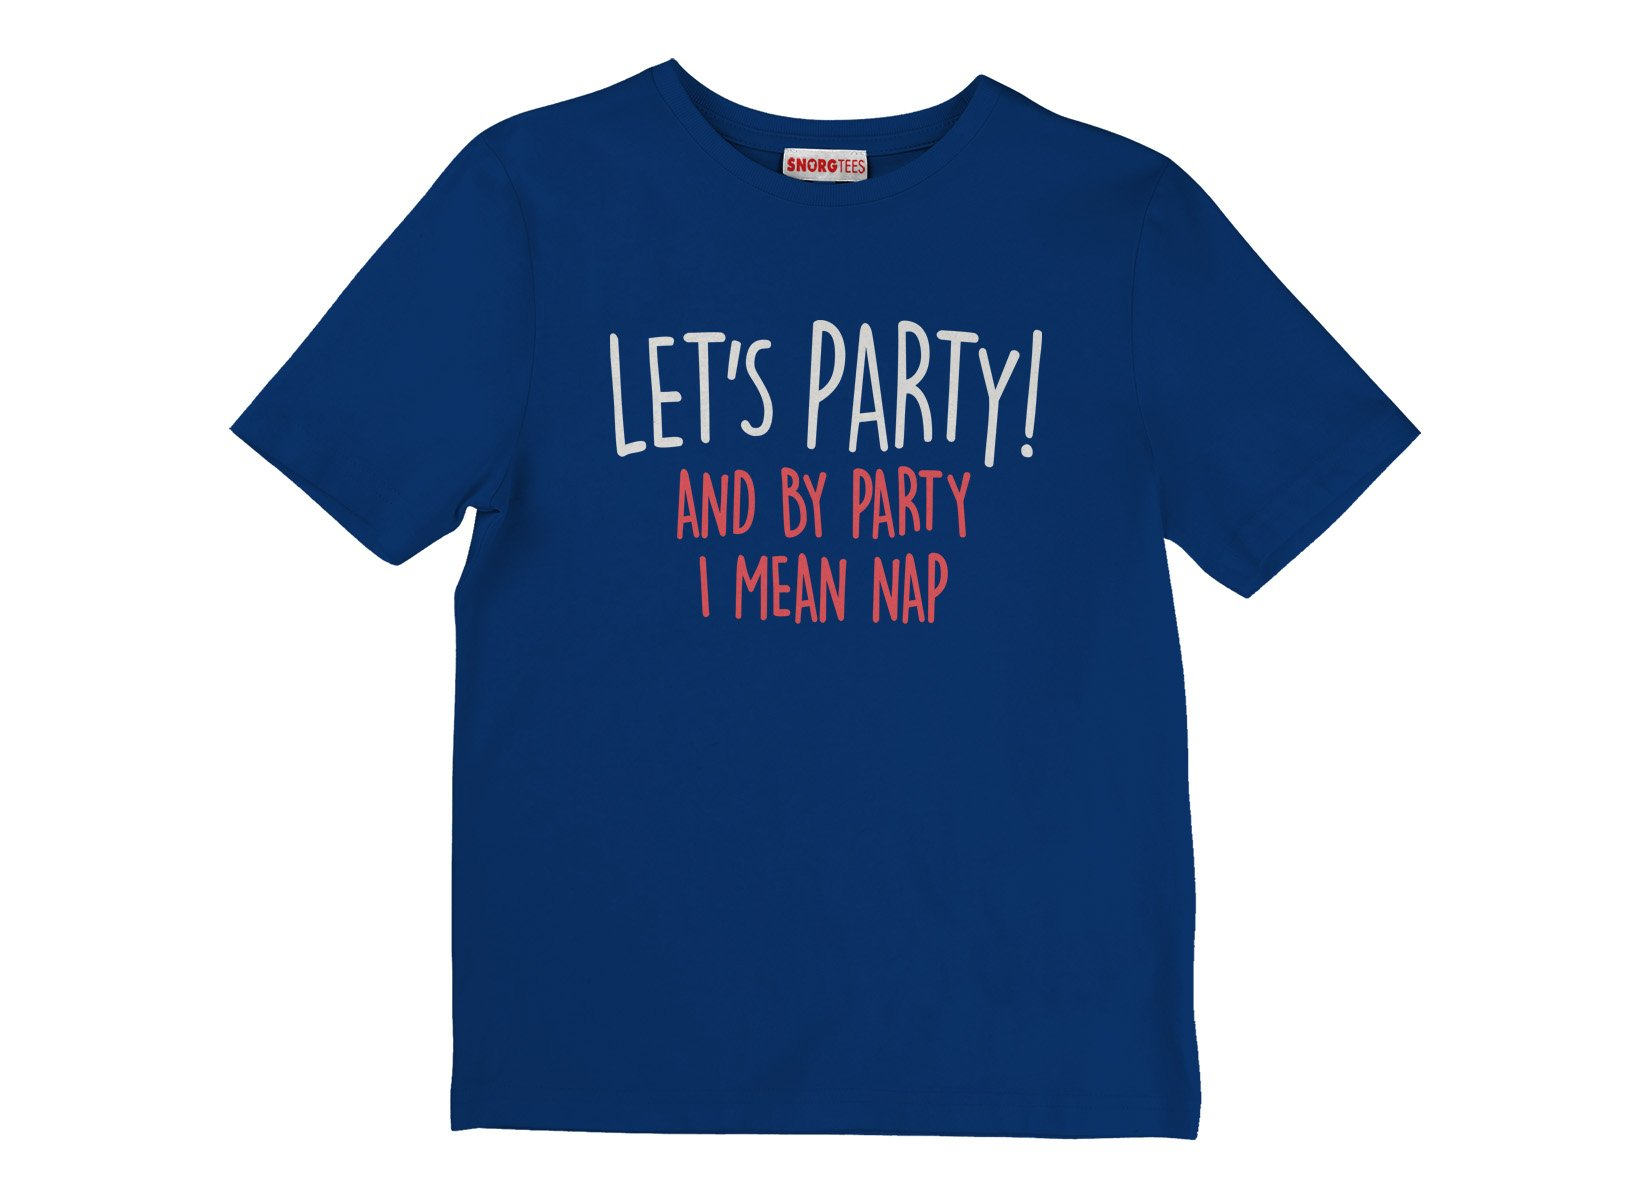 Let's Party! And By Party I Mean Nap on Kids T-Shirt